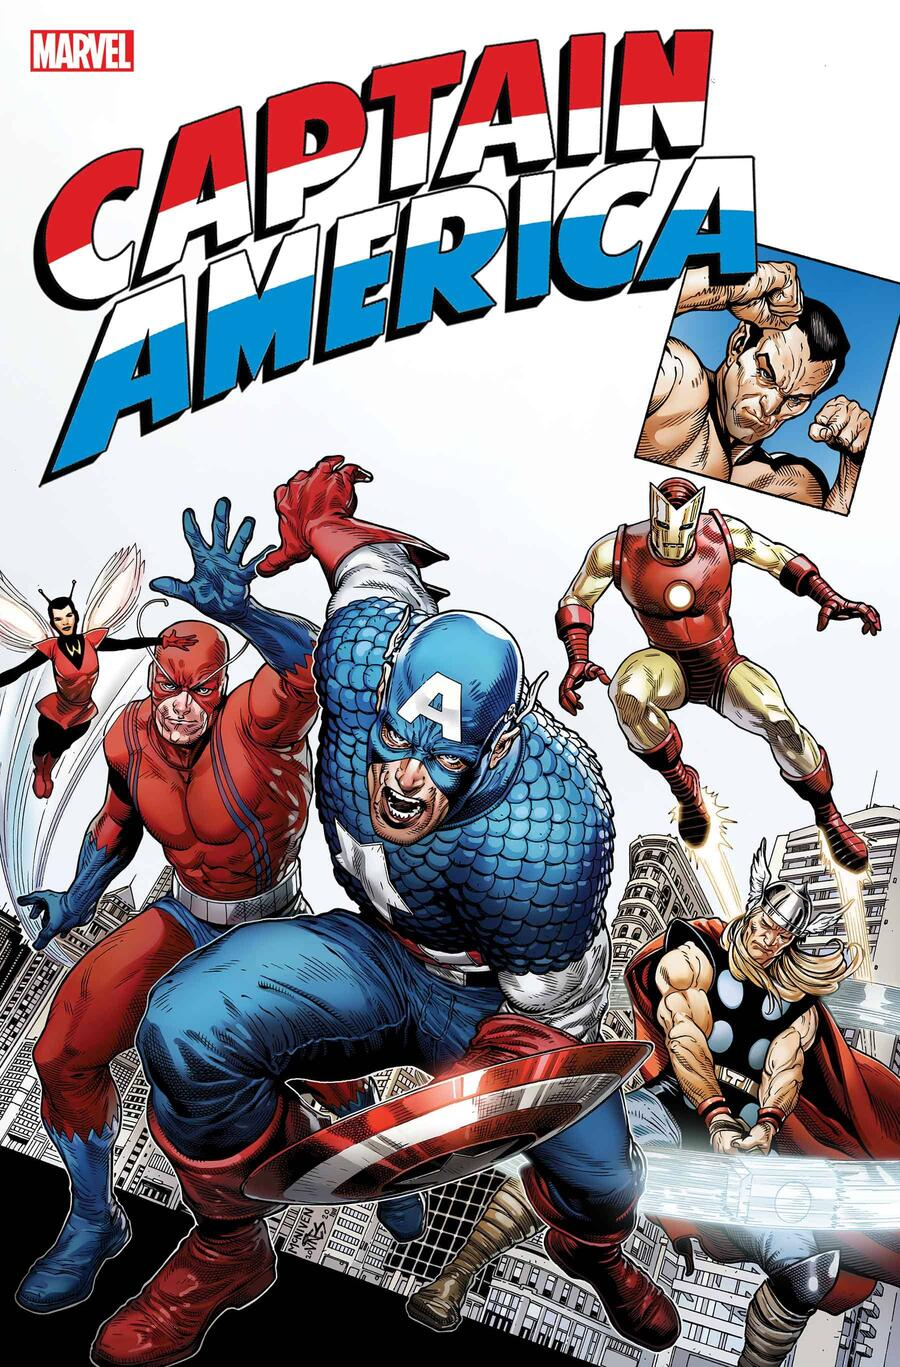 CAPTAIN AMERICA TRIBUTE #1 cover by Steve McNiven